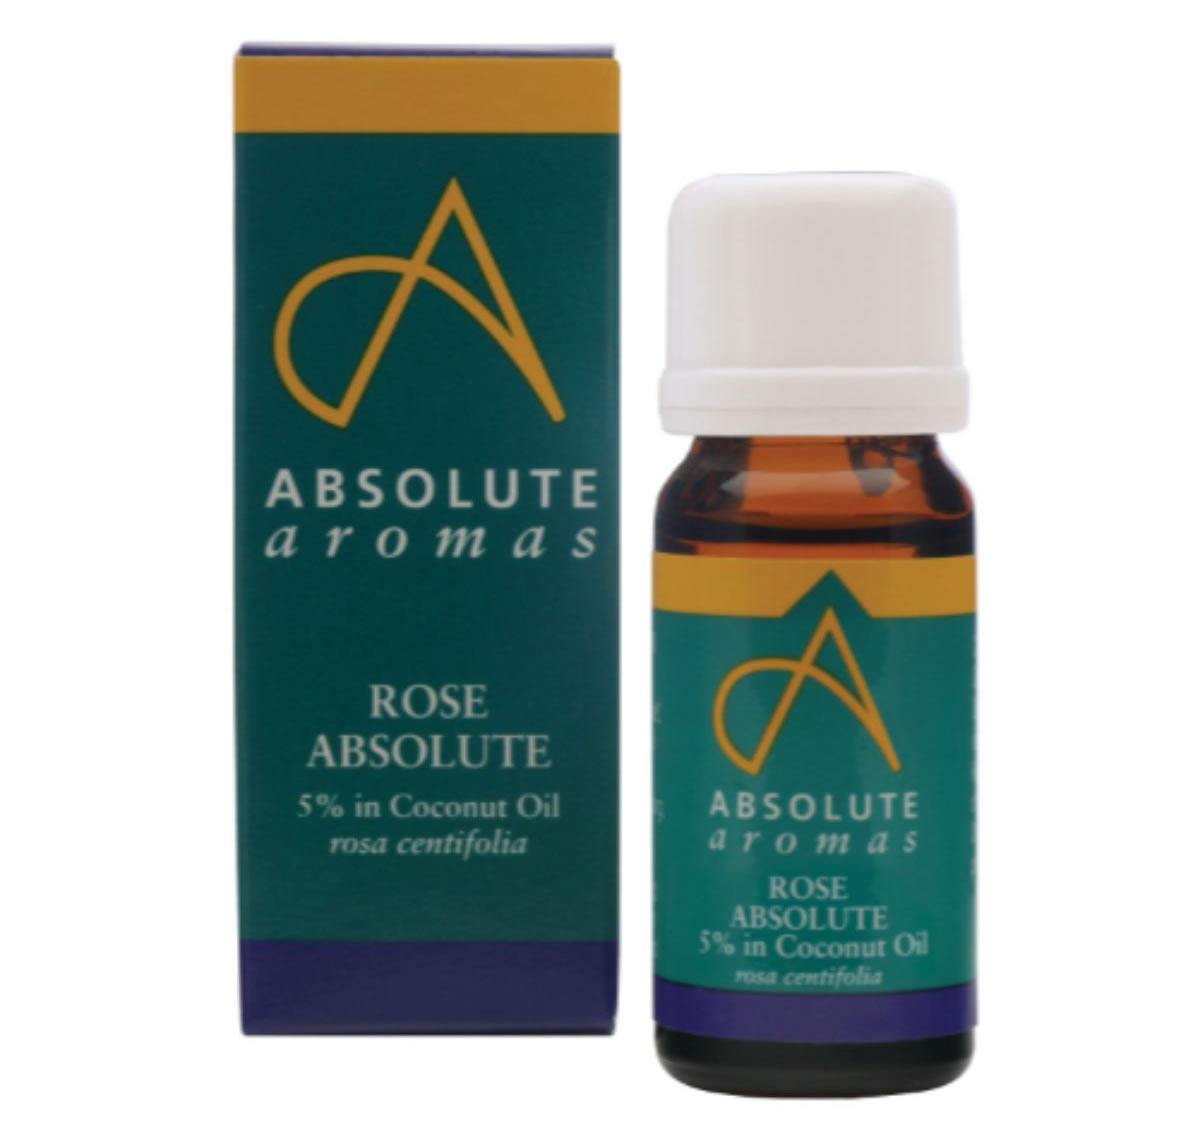 Absolute Aromas, Rose Absolute Oil 5% Dilution, 10ml